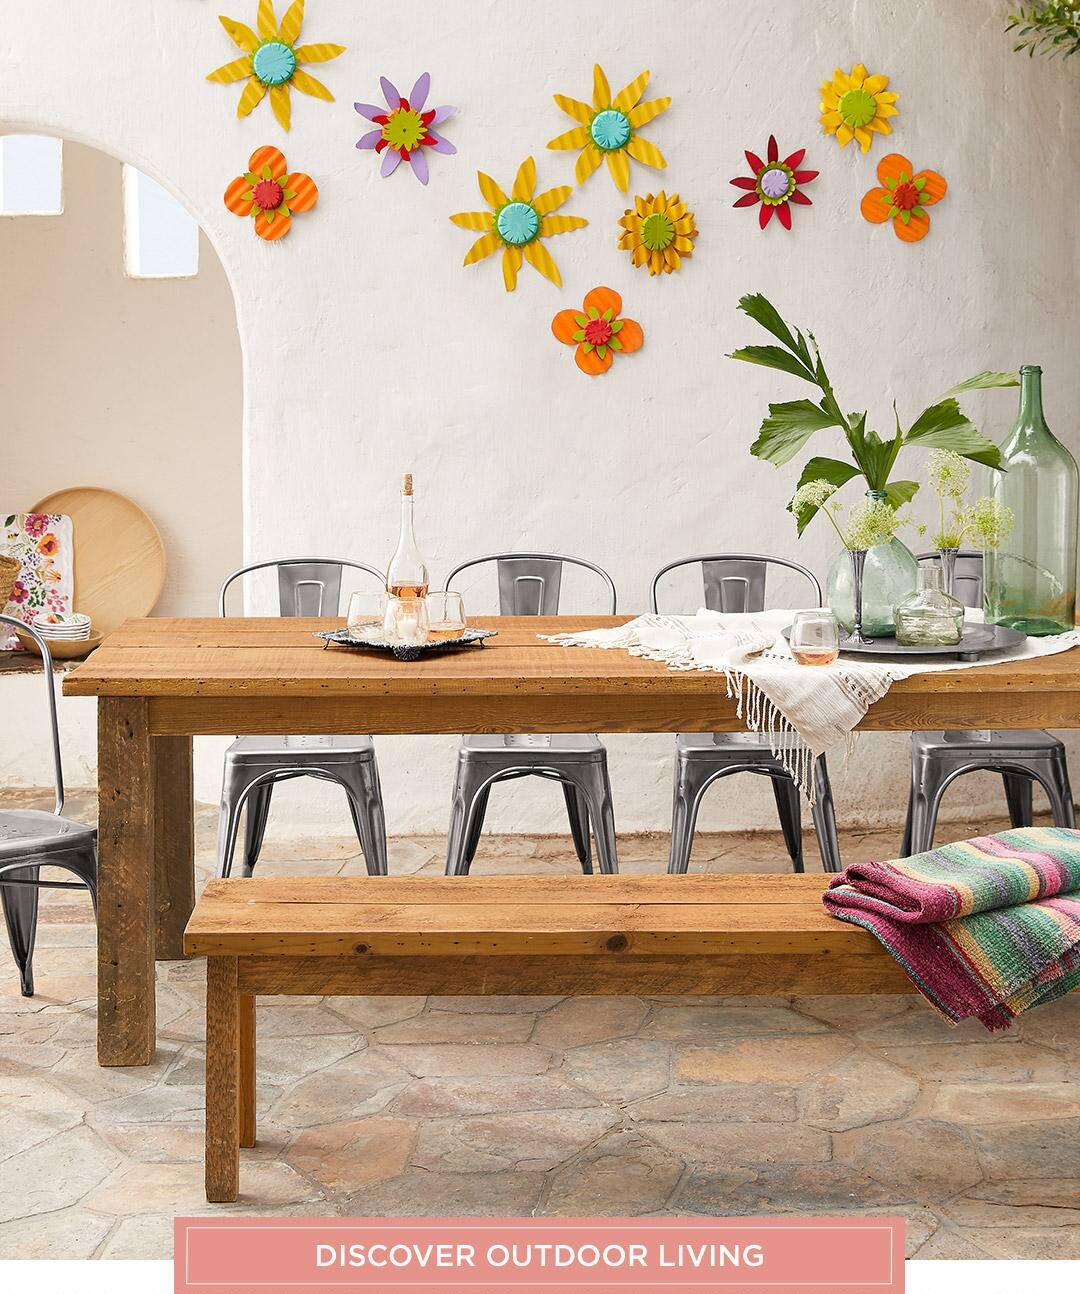 Discover Outdoor Living